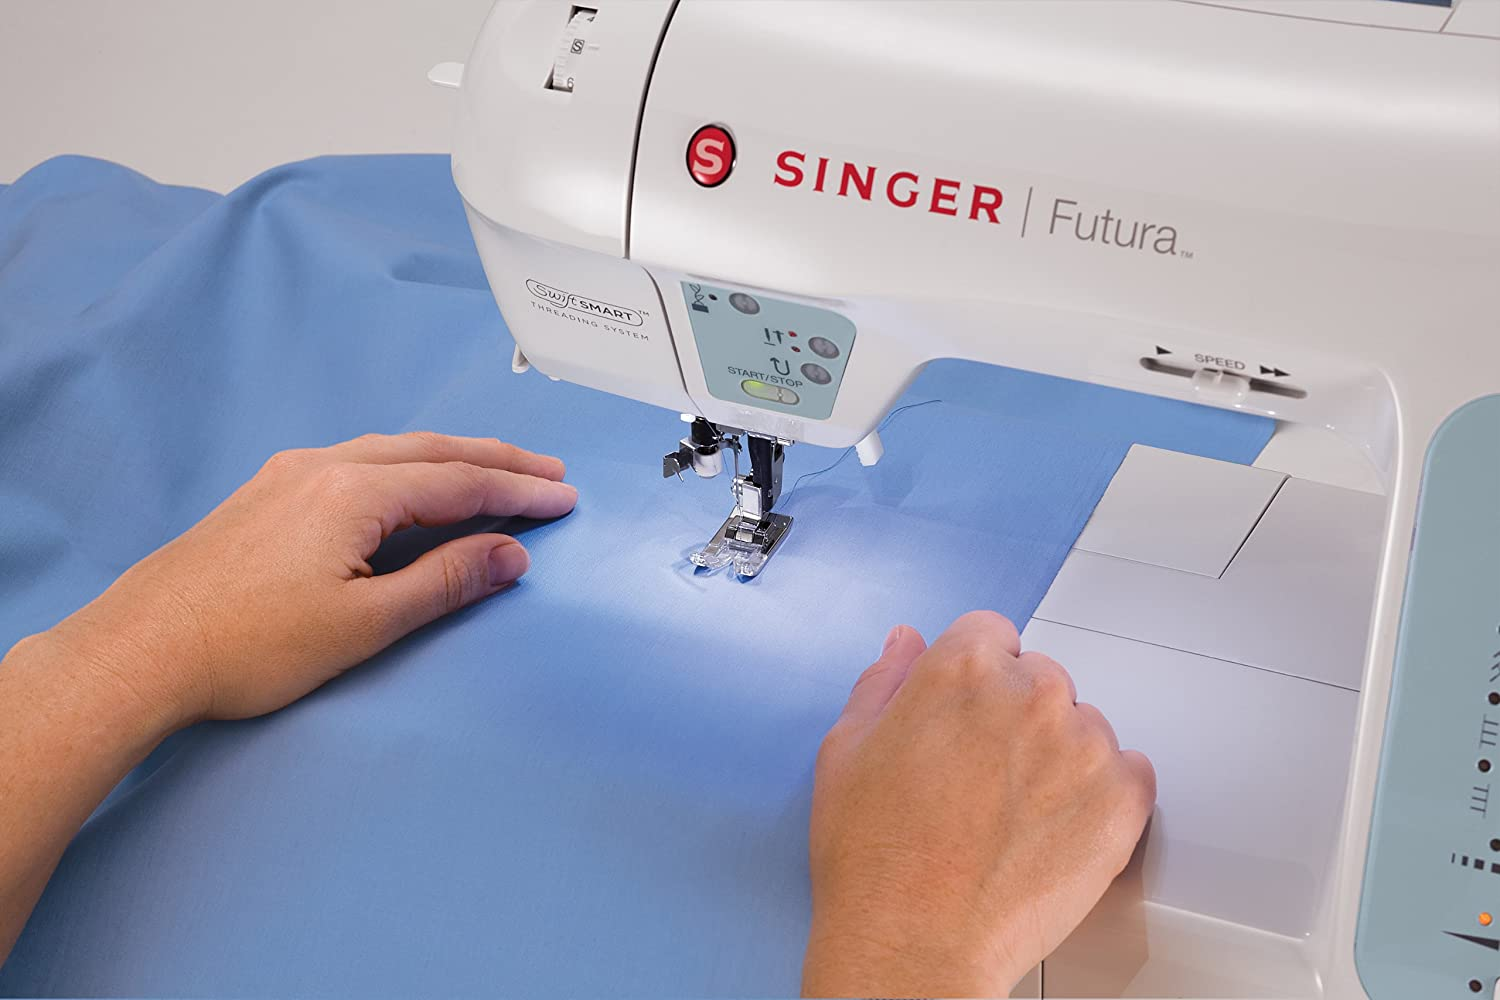 SINGER Futura XL-400 Embroidery Machine Review